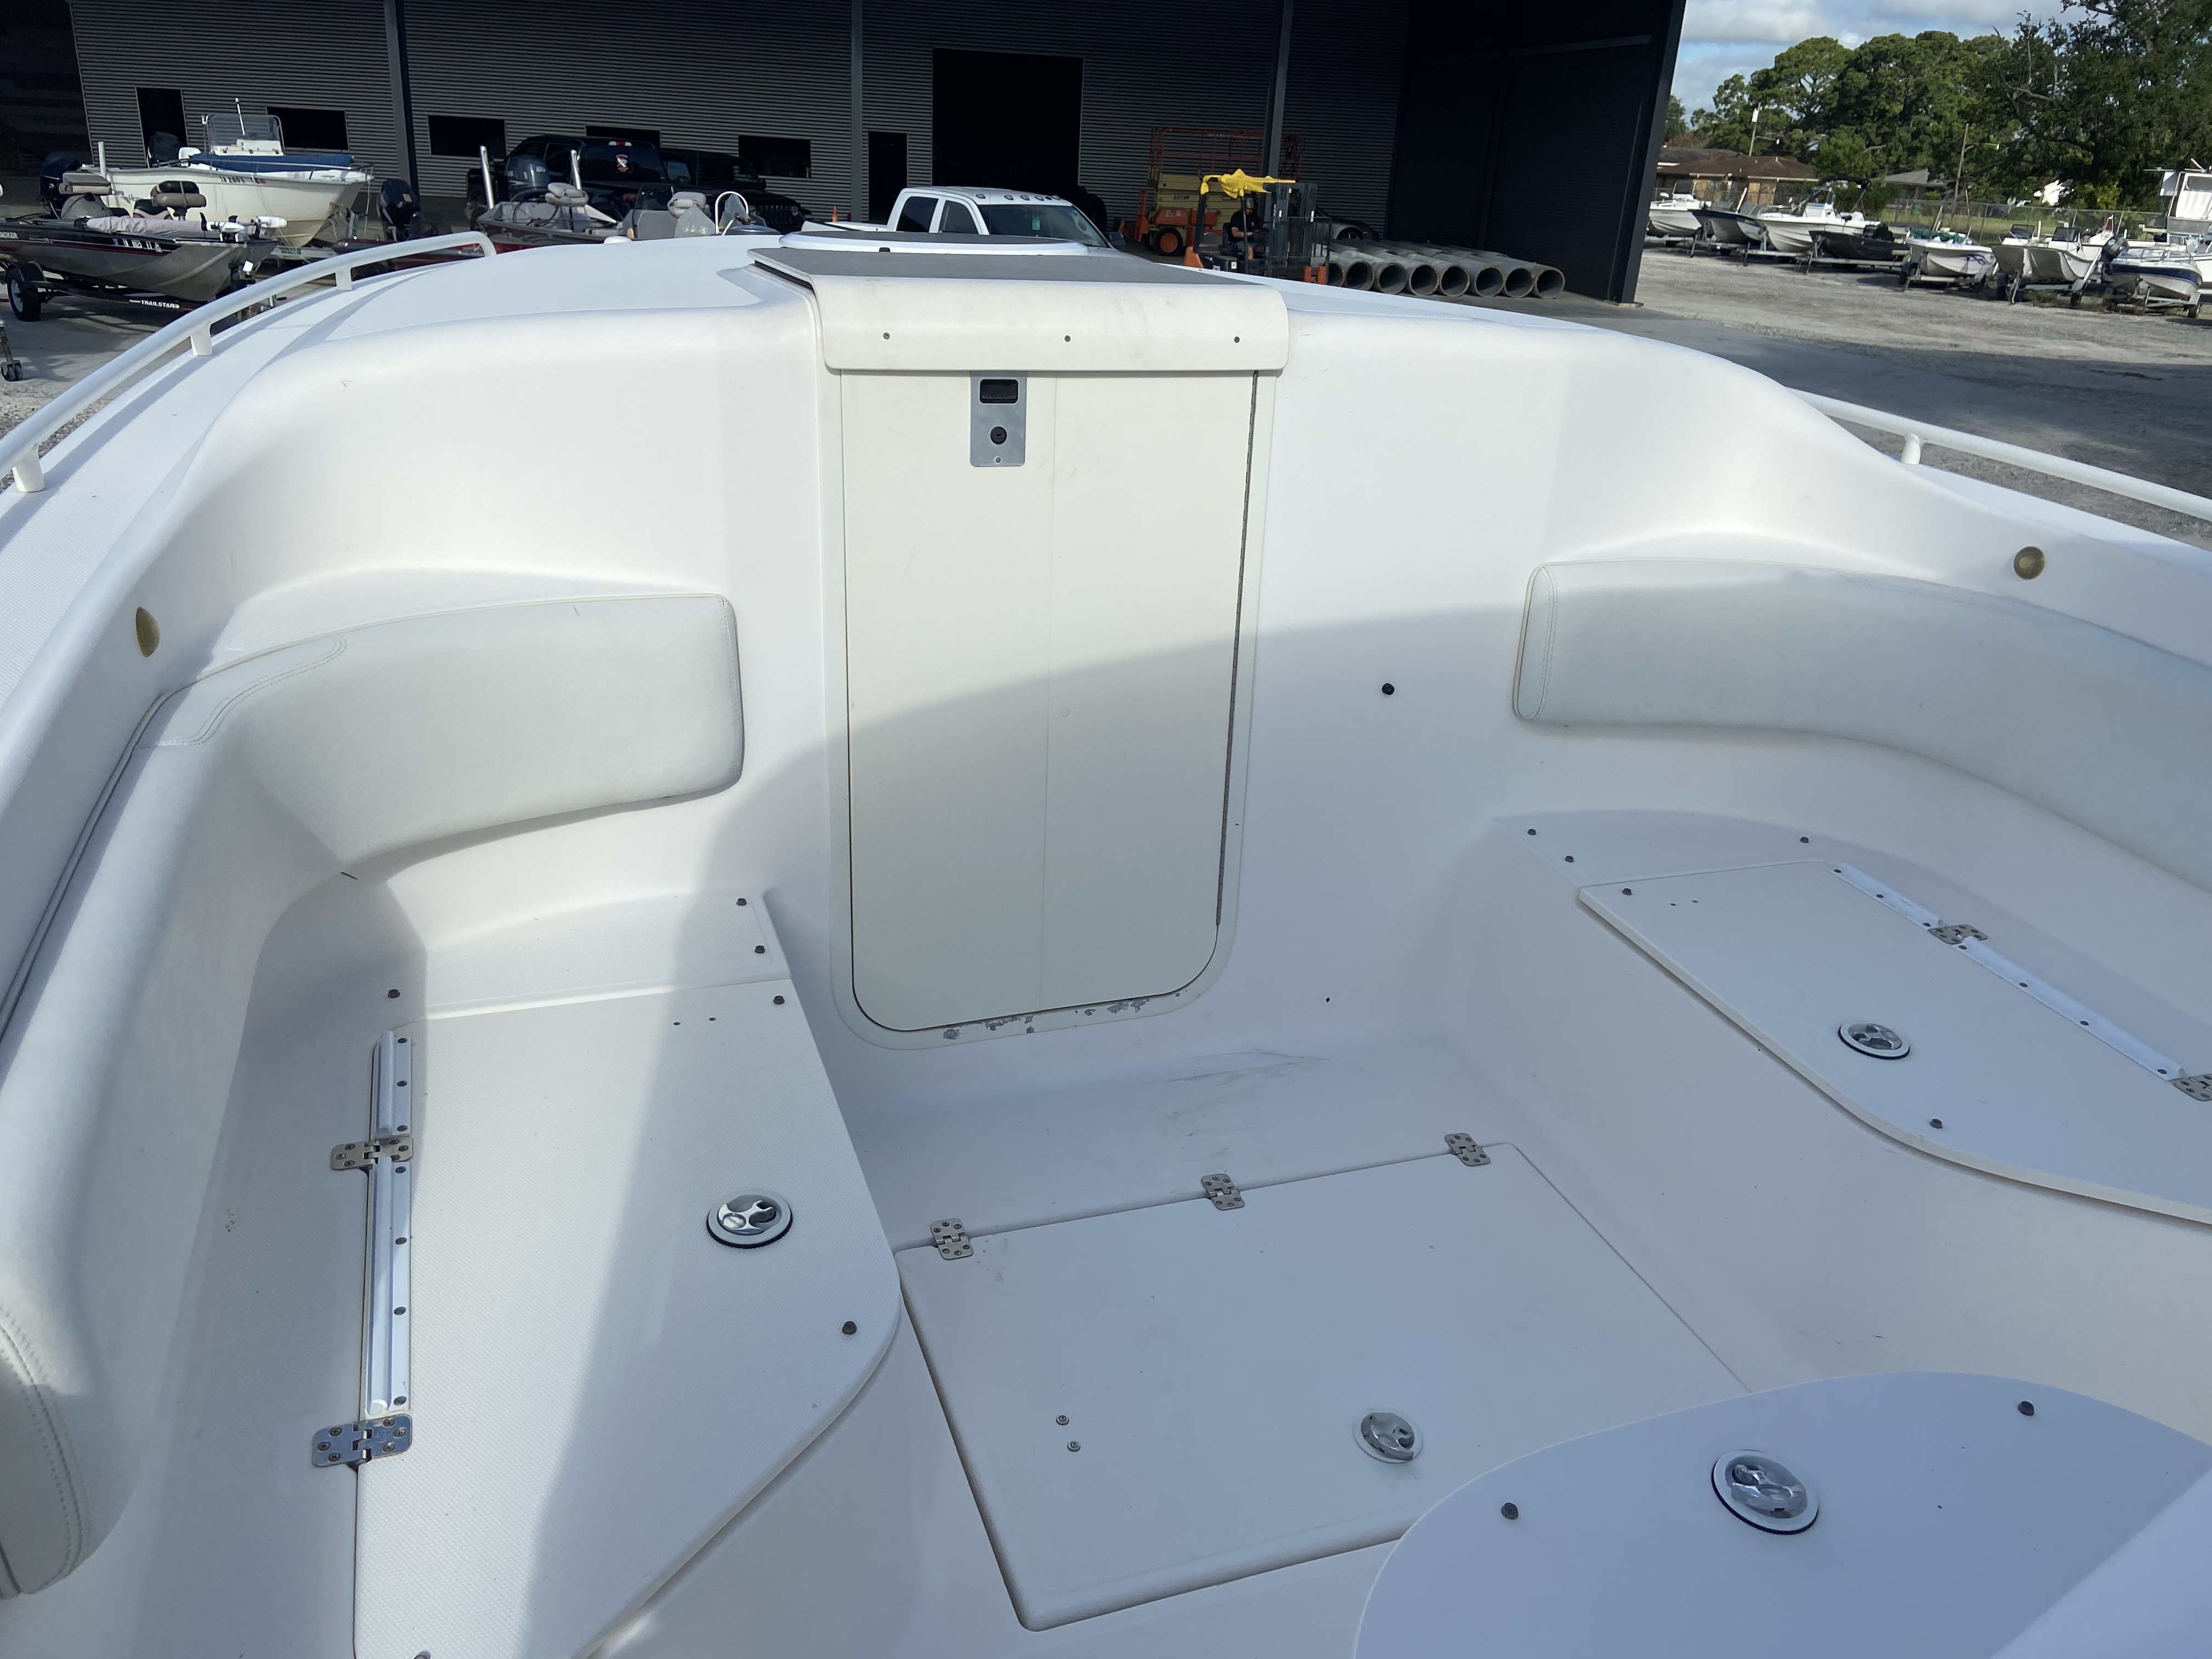 2006 Wellcraft boat for sale, model of the boat is 352 Sport & Image # 15 of 27